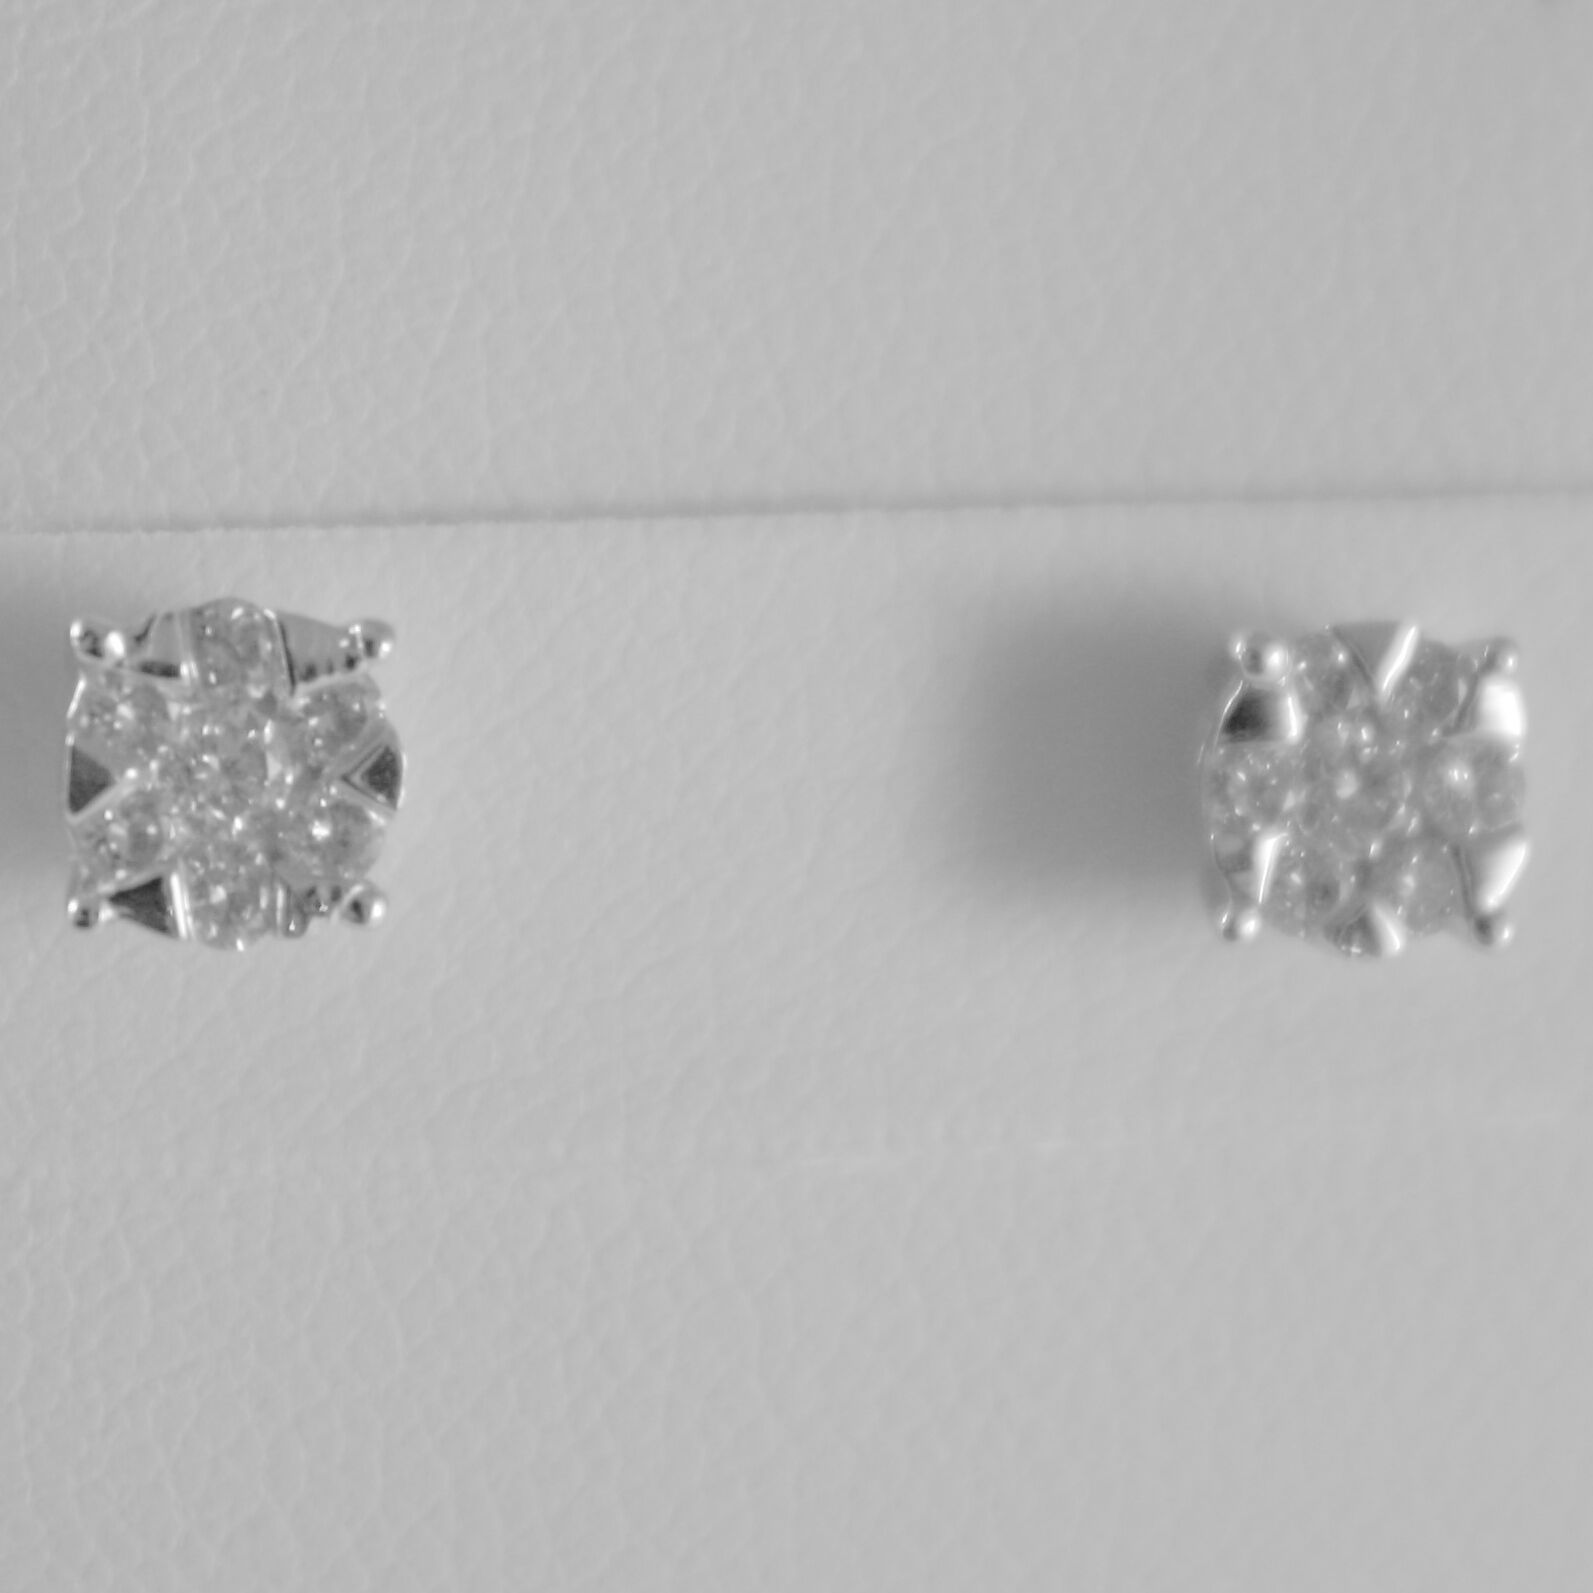 18K WHITE GOLD ROUND EARRINGS WITH DIAMOND DIAMONDS 0.33 CARATS, MADE IN ITALY